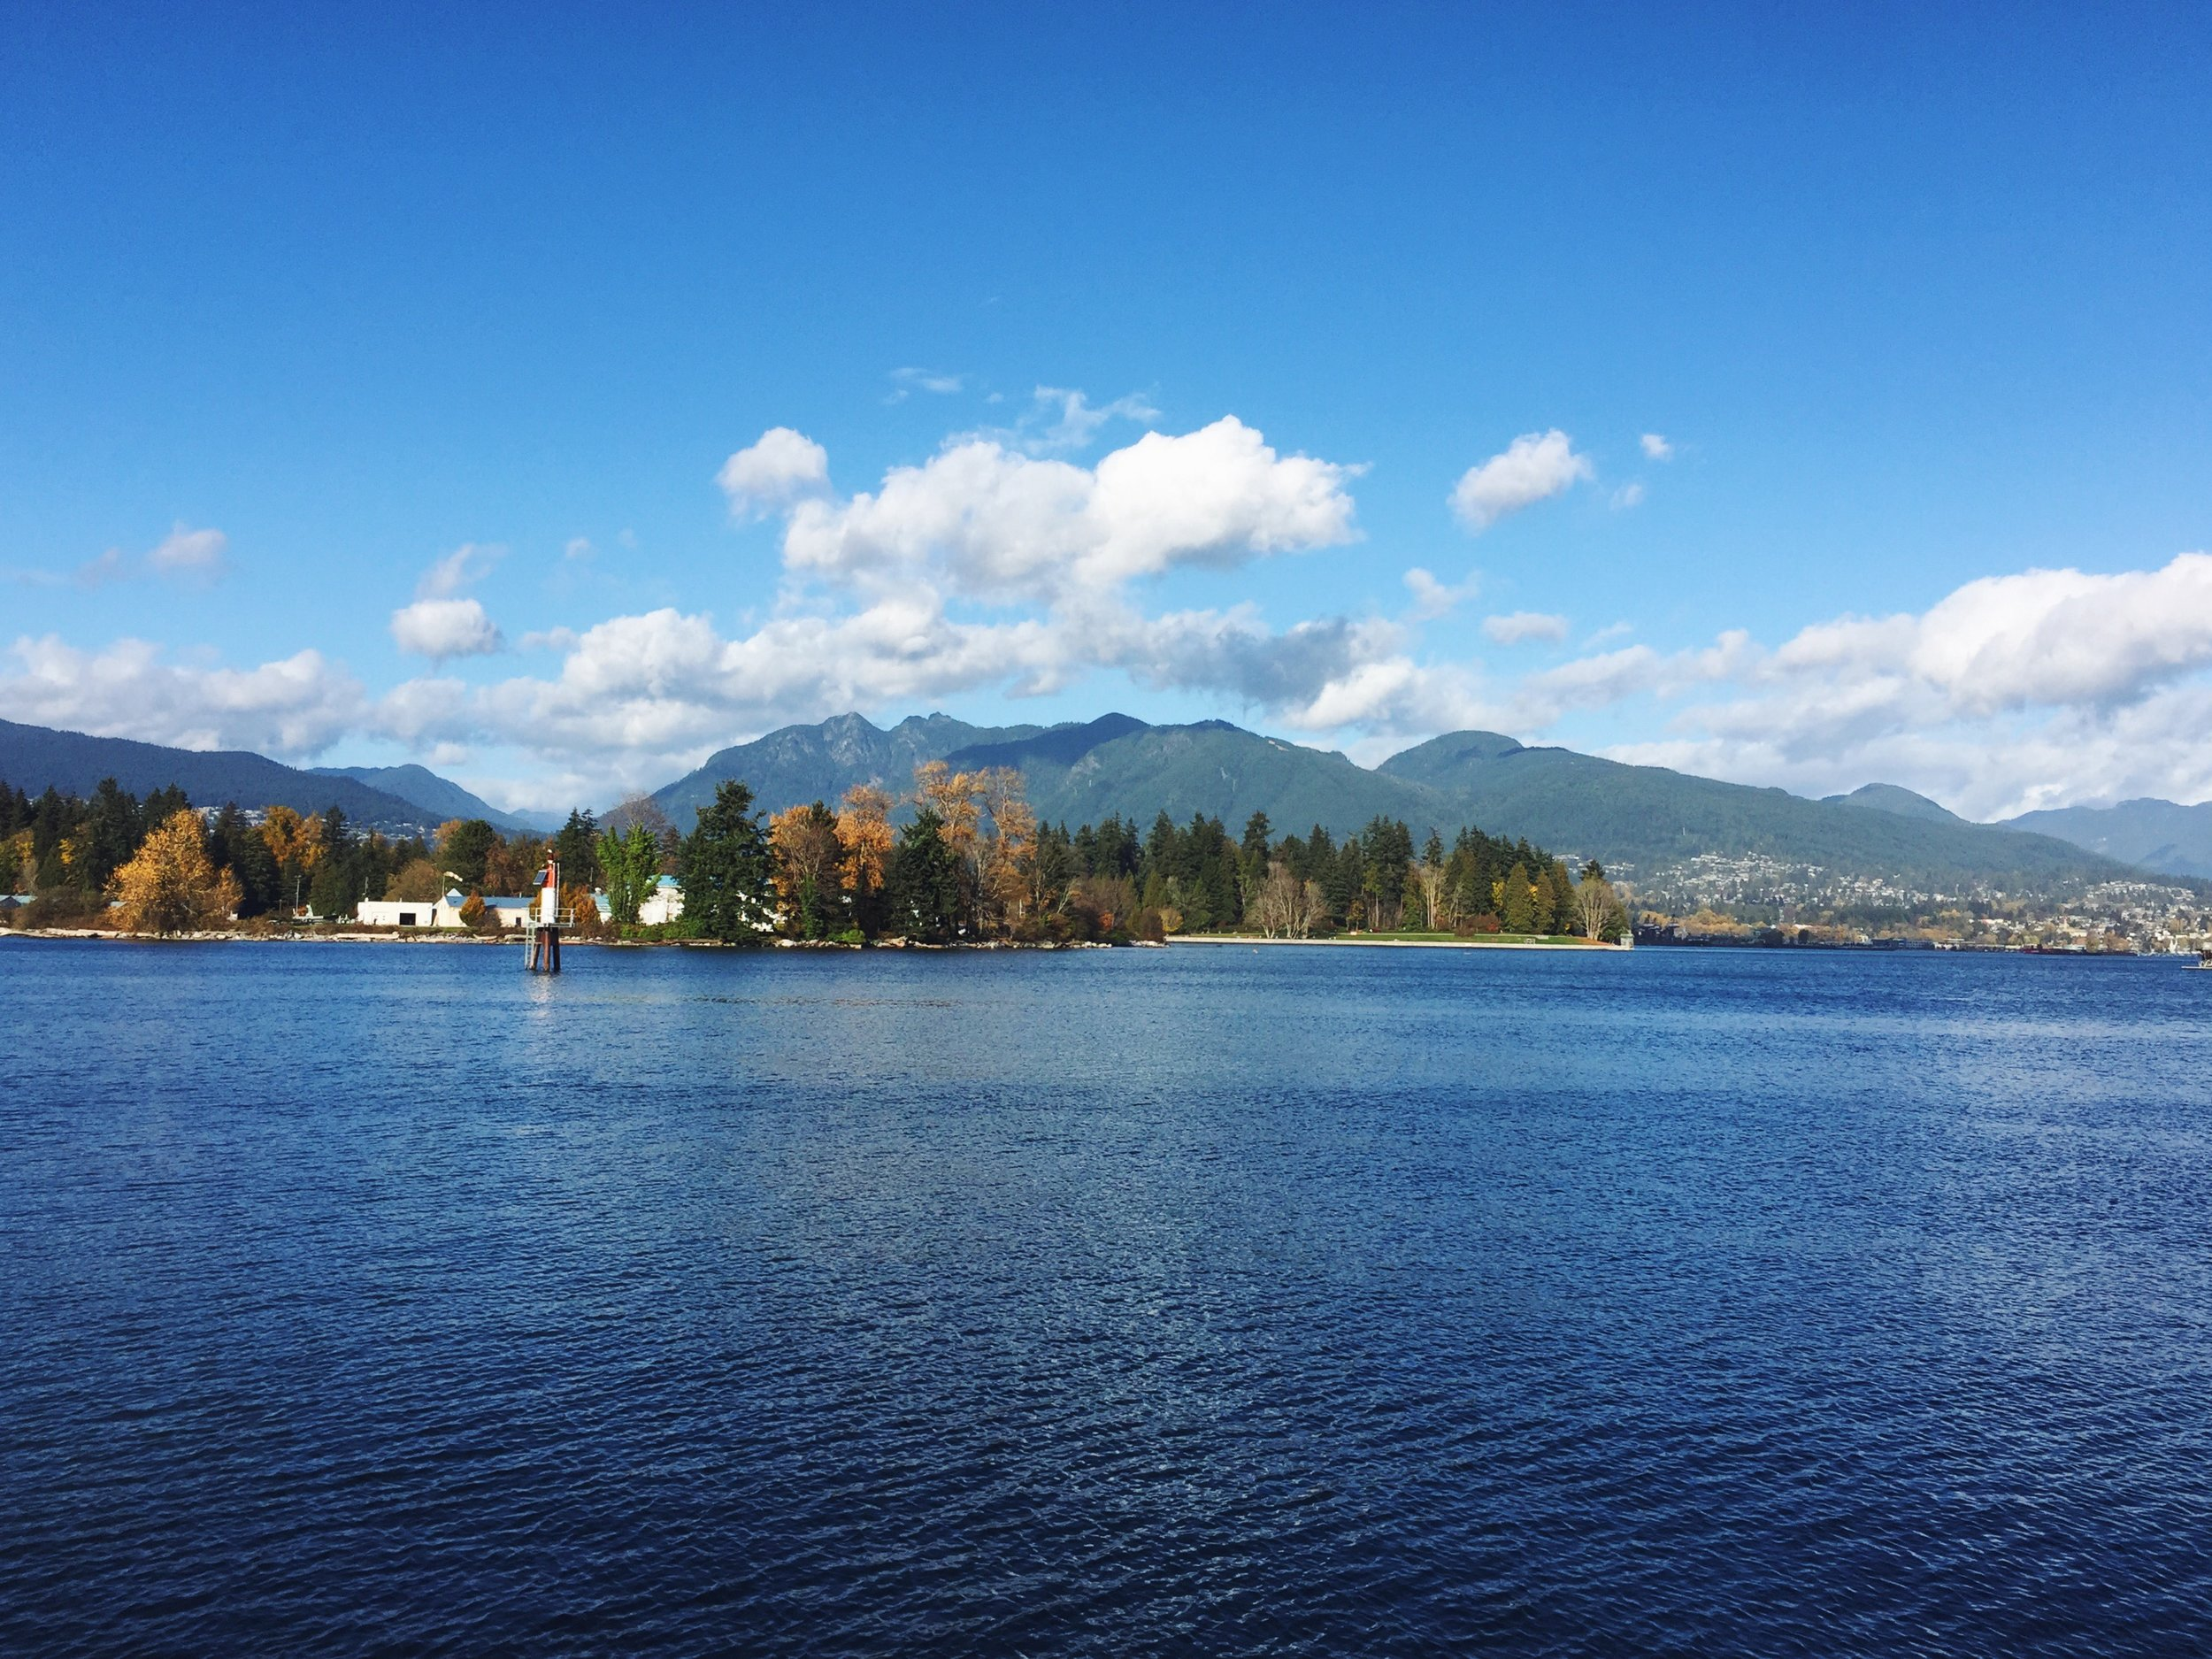 Gorgeous views from the water front downtown Vancouver.